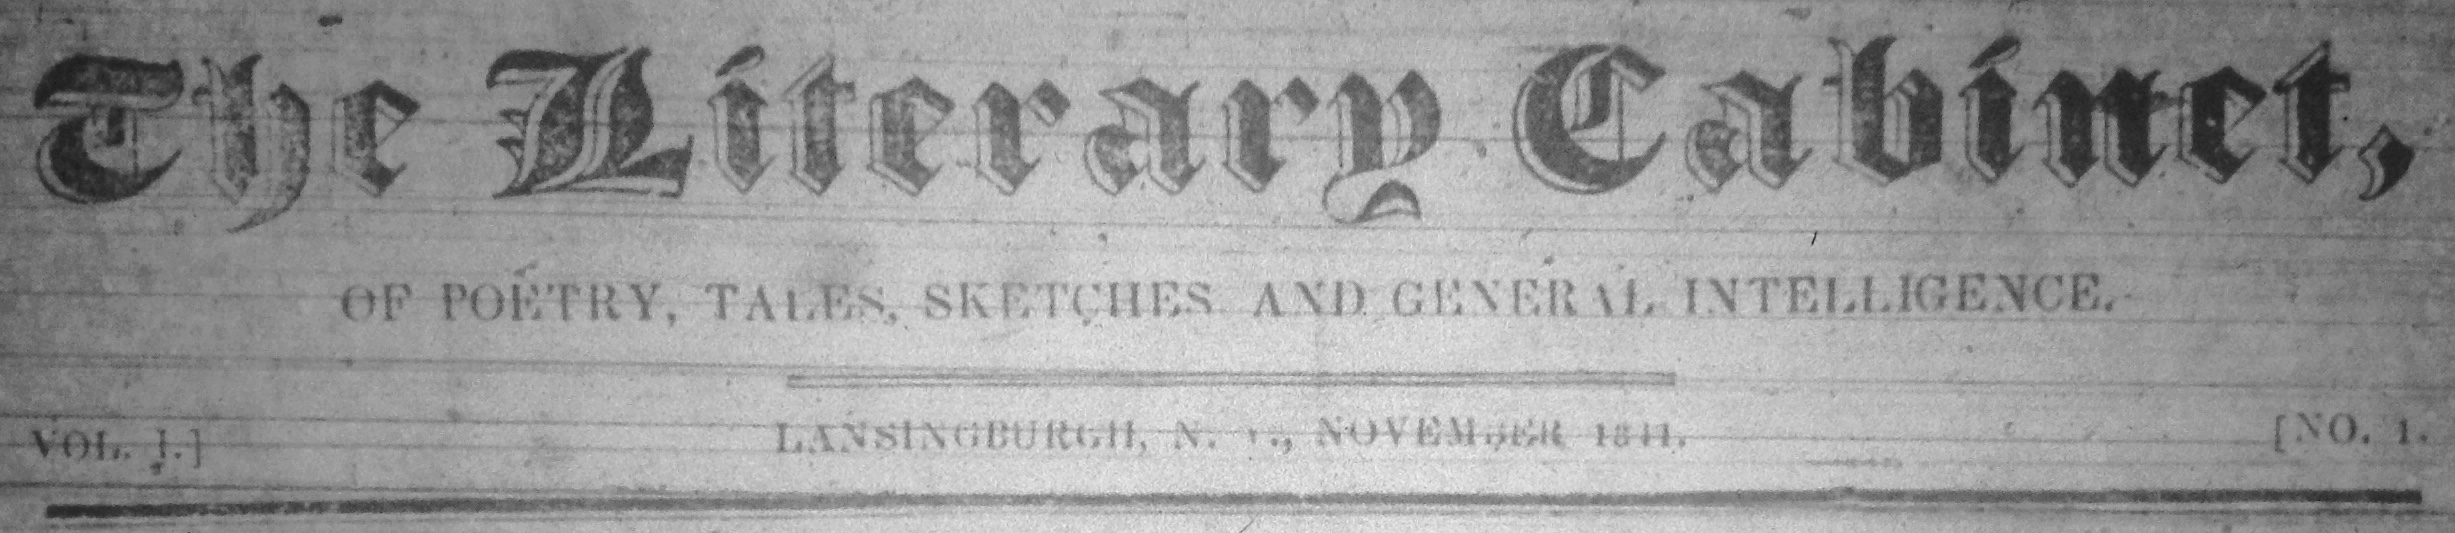 The Literary Cabinet, of Poetry, Tales, Sketches and General Intelligence. Vol. 1, No. 1. Lansingburgh, N. Y., November 1844. (Masthead.)